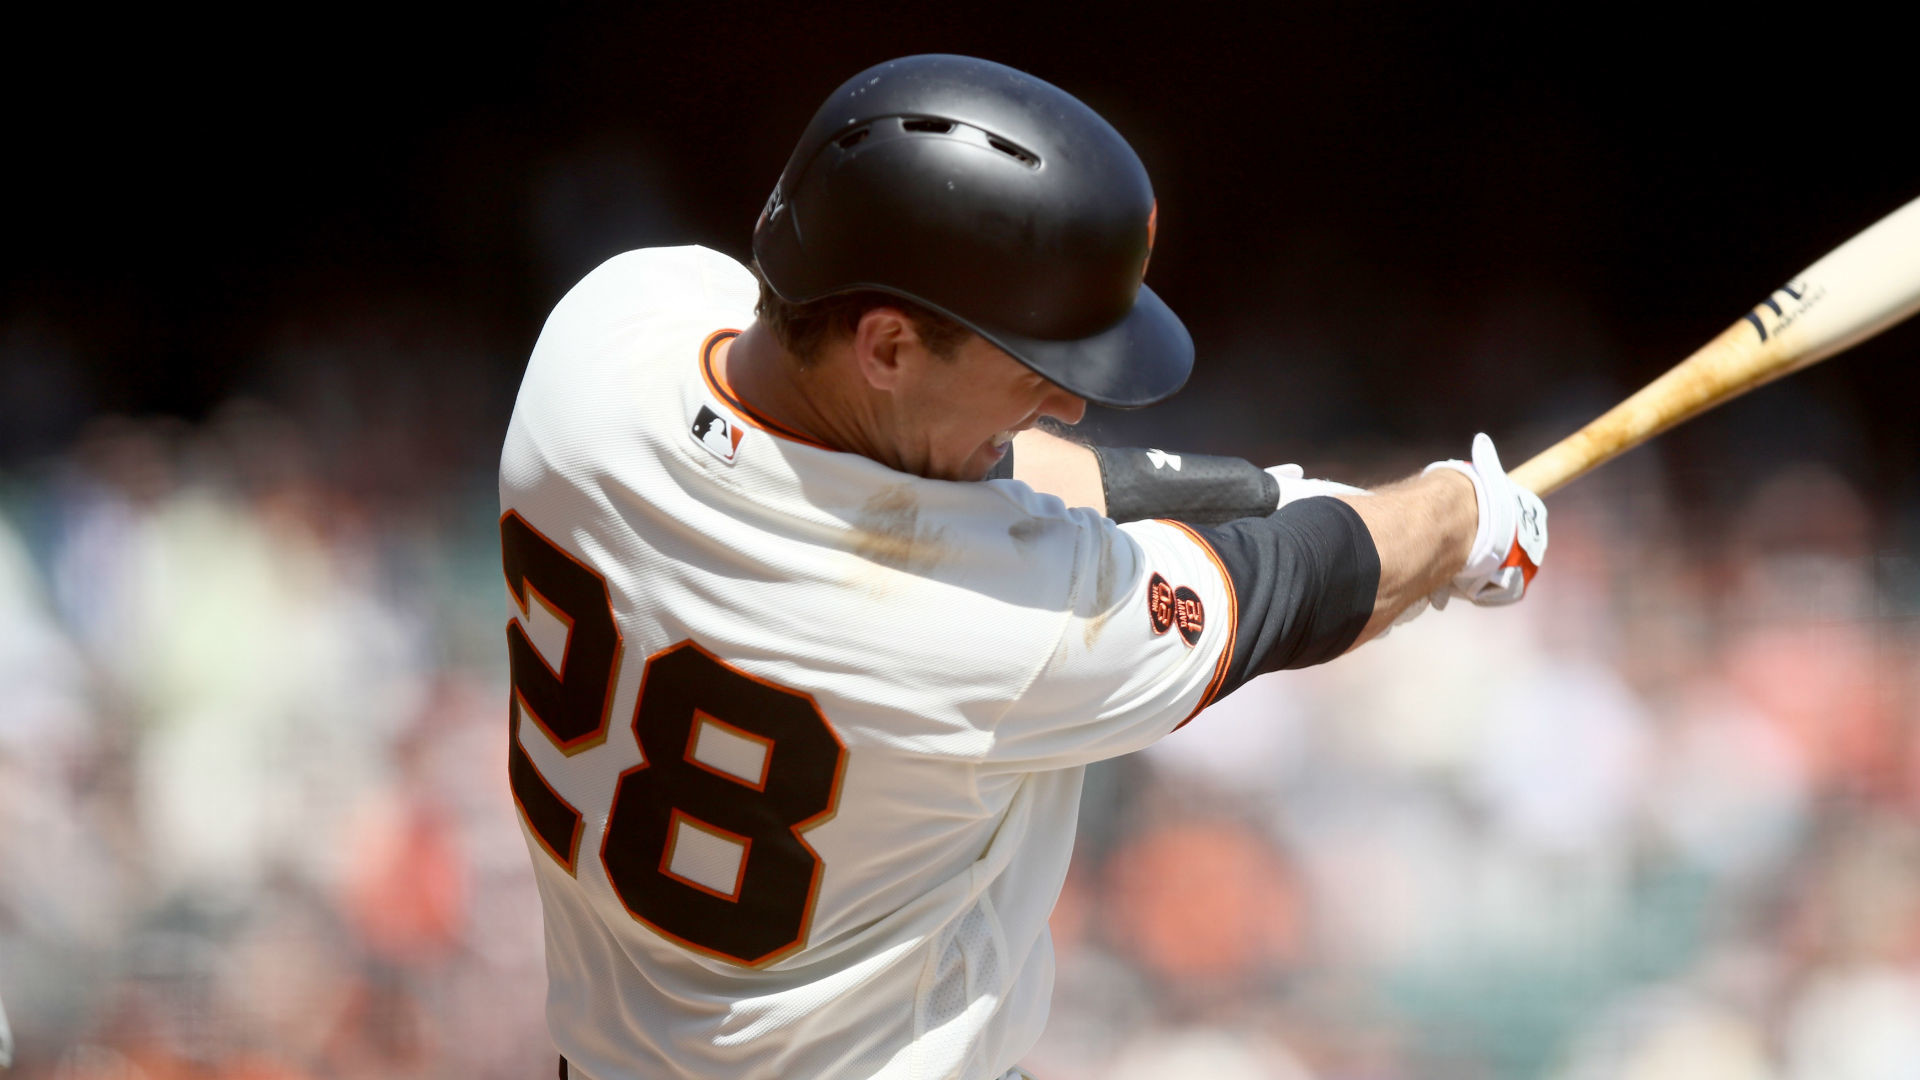 Giants activate Buster Posey from 7-day concussion DL | MLB | Sporting News